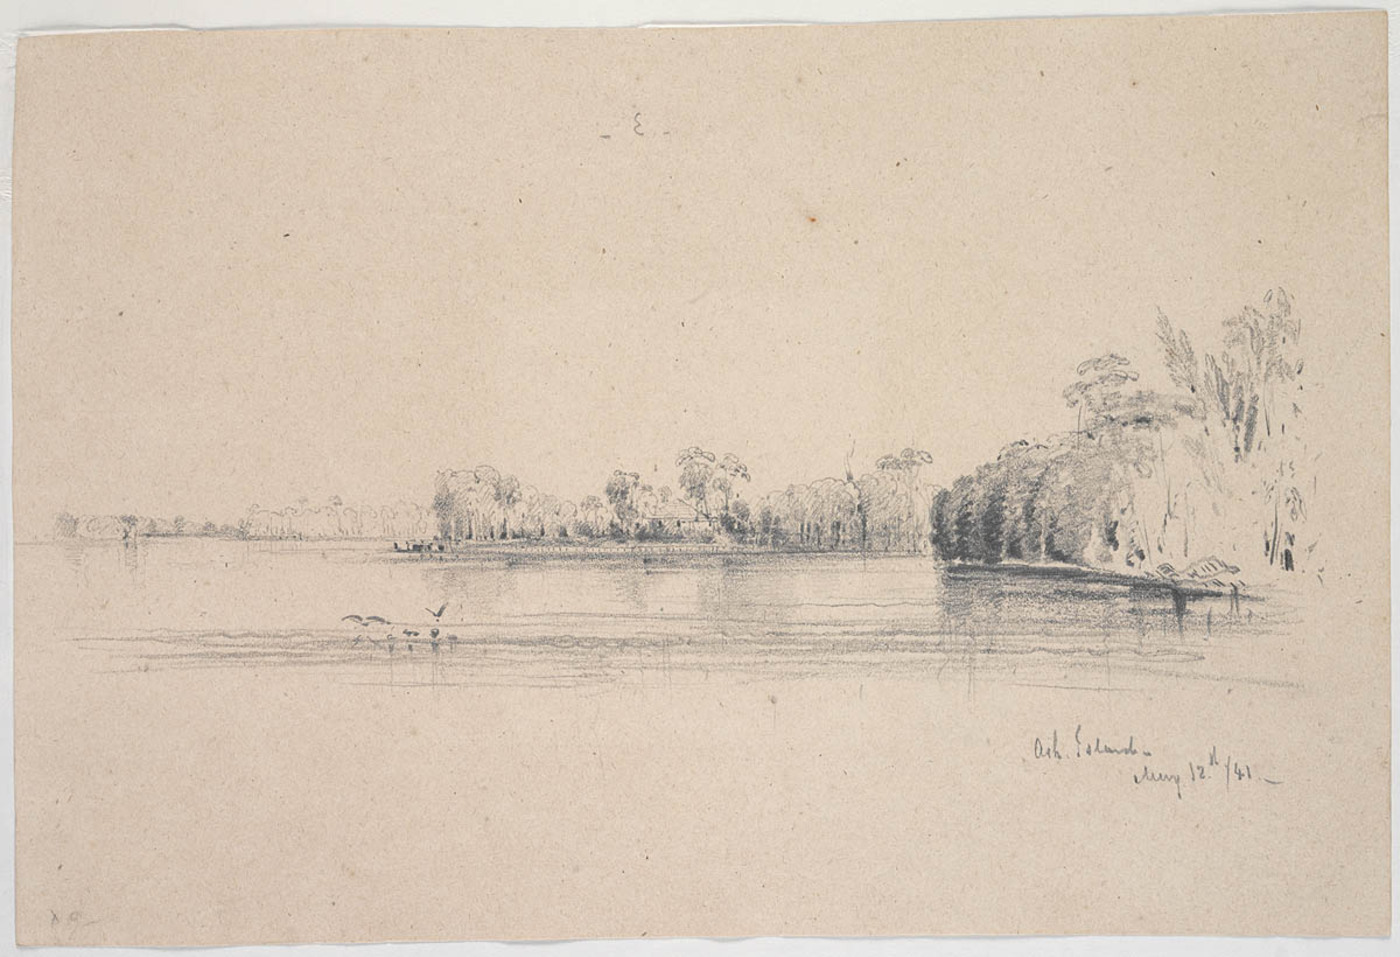 i. [flyleaf] Ash Island 12th May 1841 by Conrad Martens (Courtesy of the State Library of NSW)